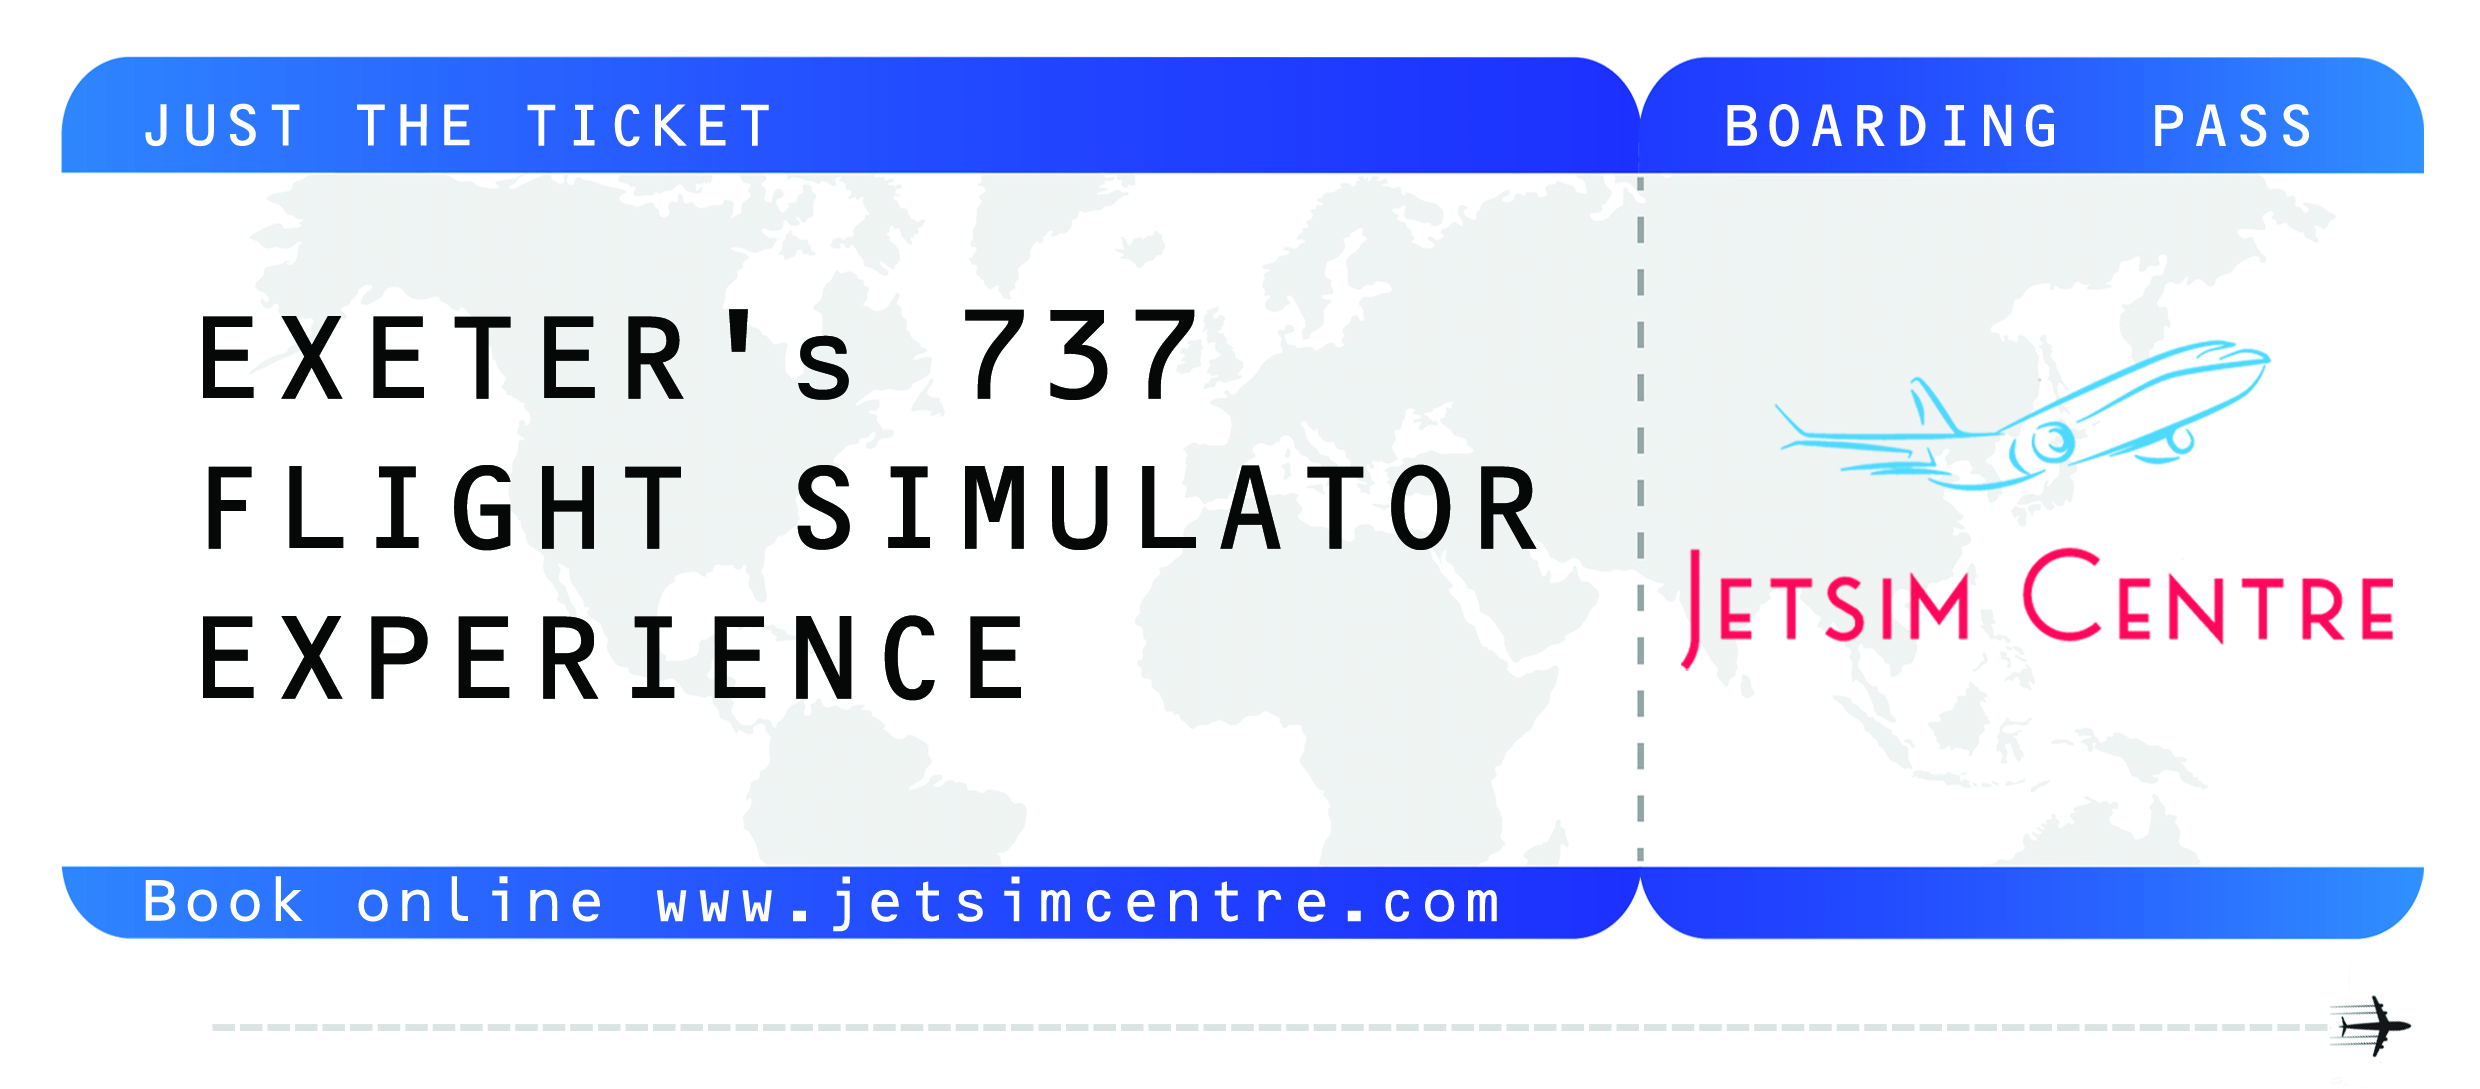 If you're looking for the perfect gift - we have just the ticket.  Book online  www.jetsimcentre.com/book-a-flight